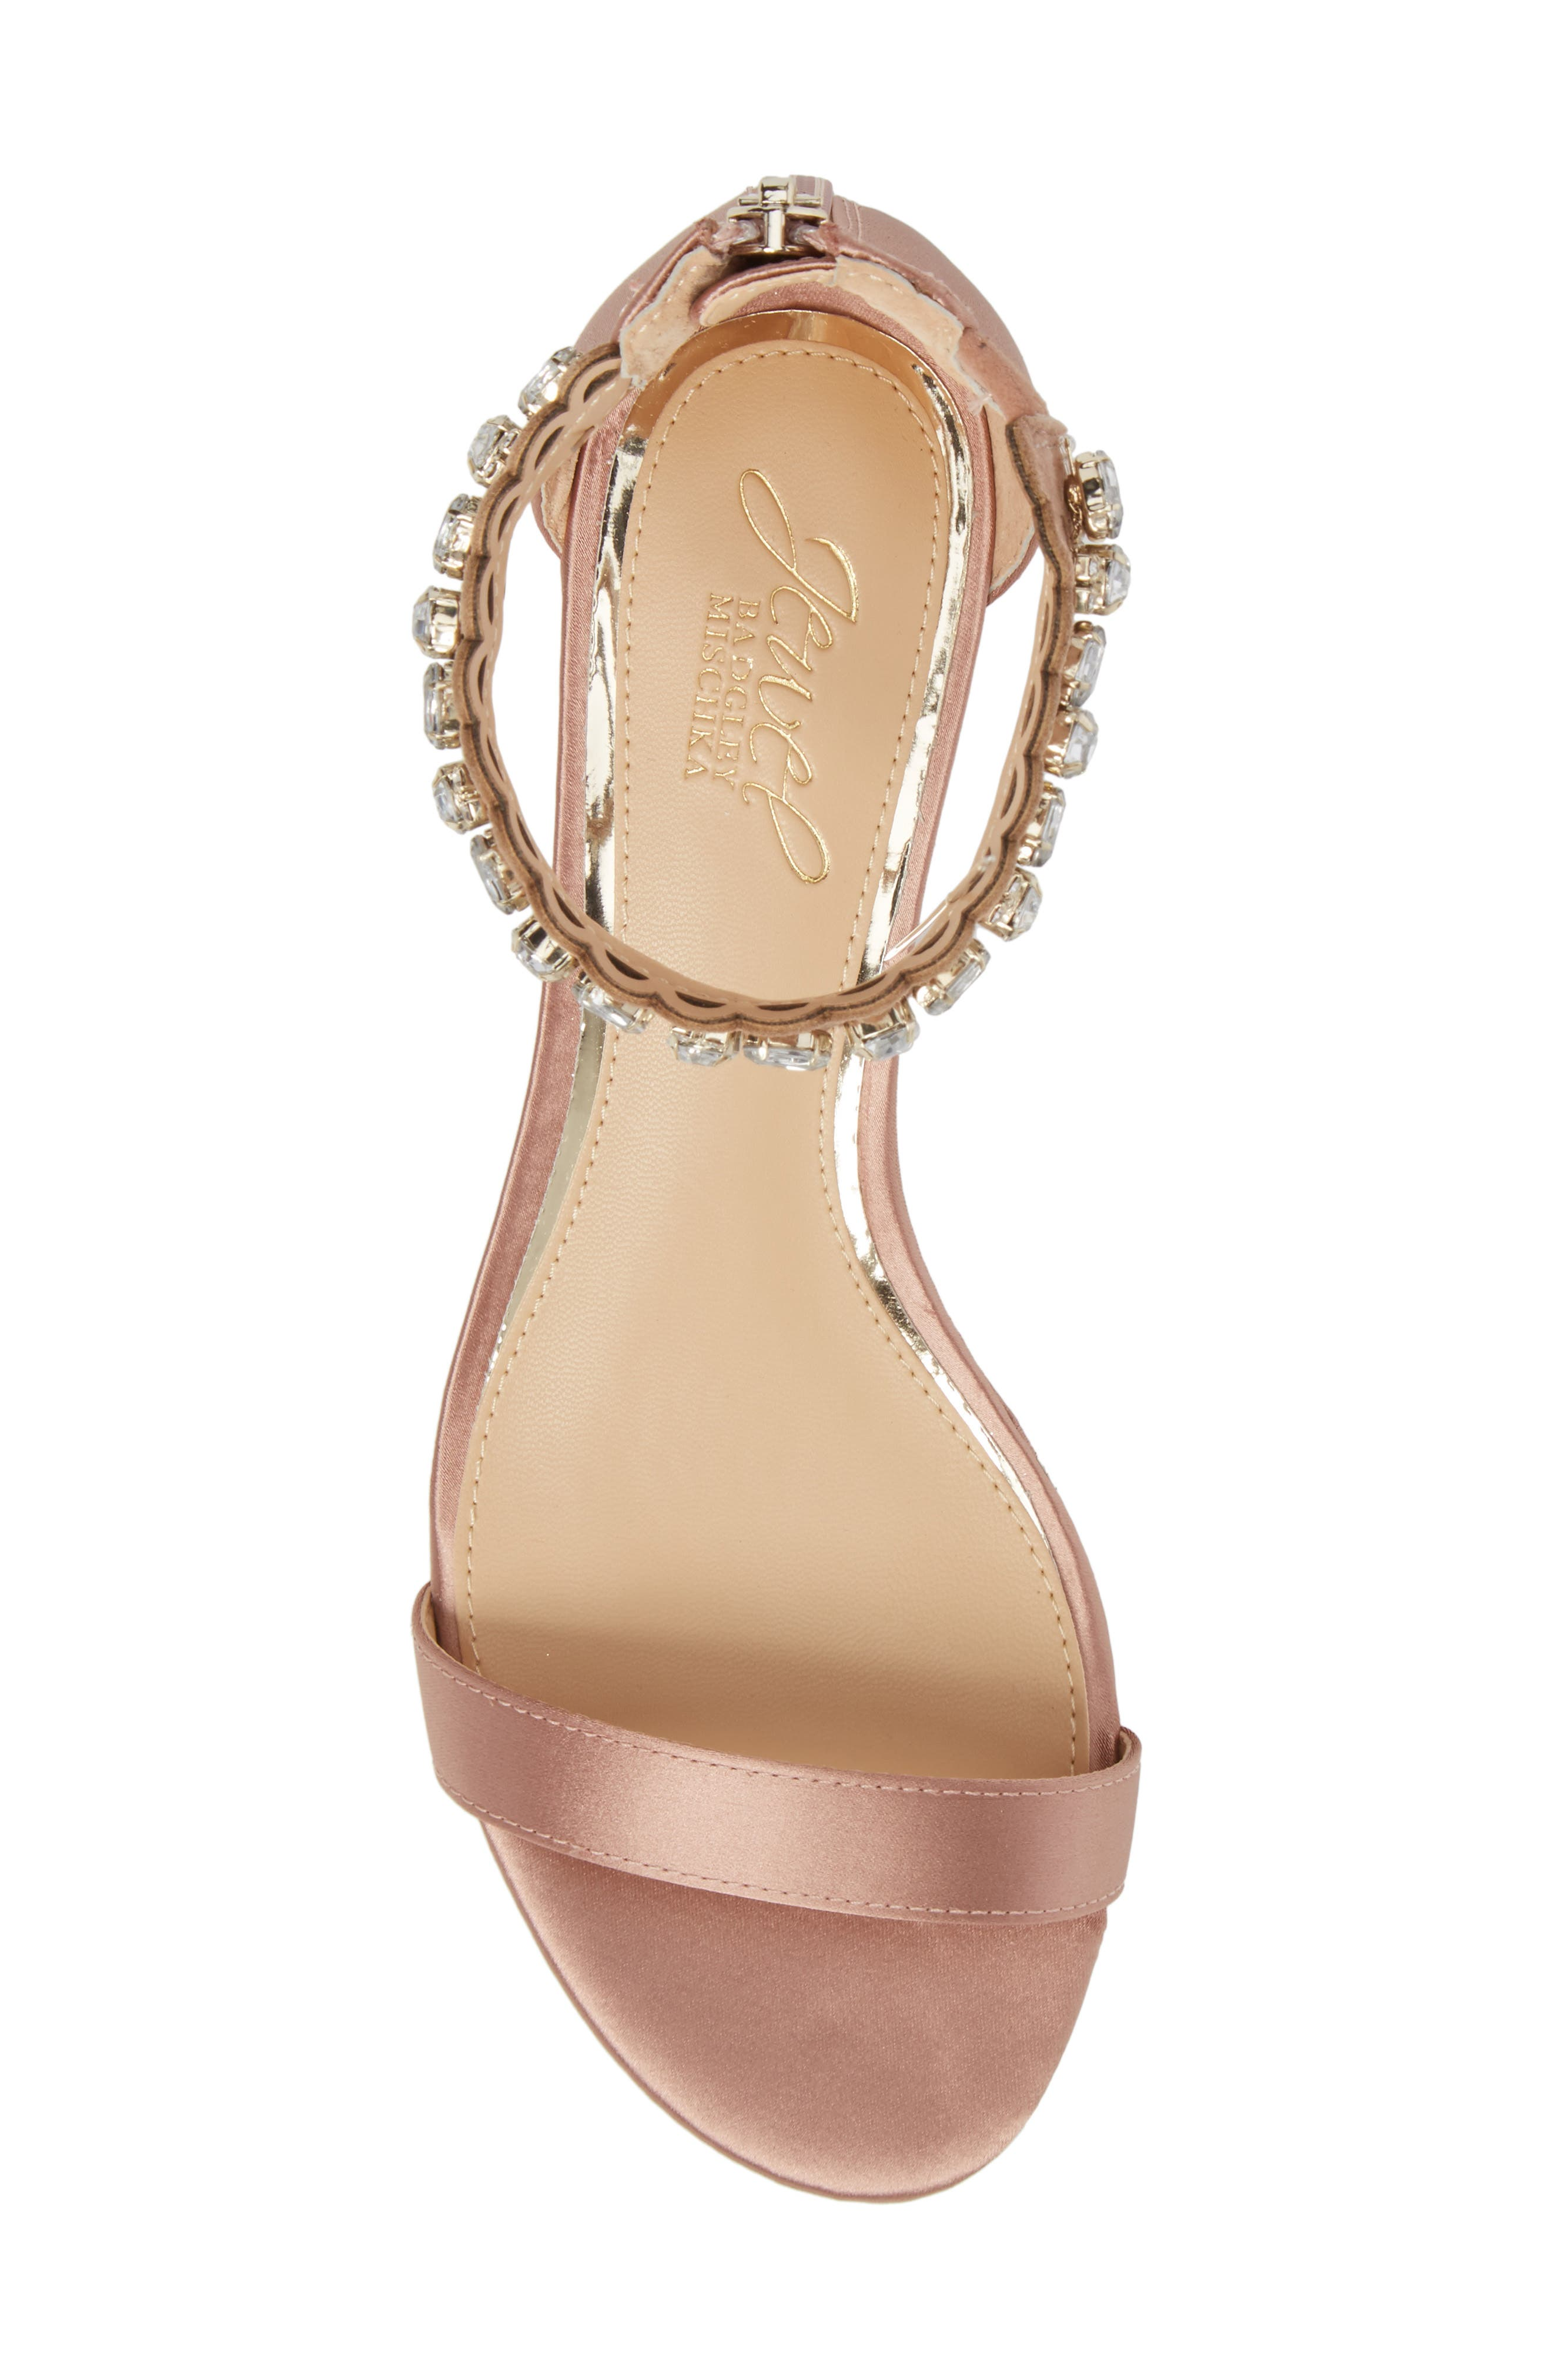 Ginger Wedge Sandal,                             Alternate thumbnail 5, color,                             Dark Blush